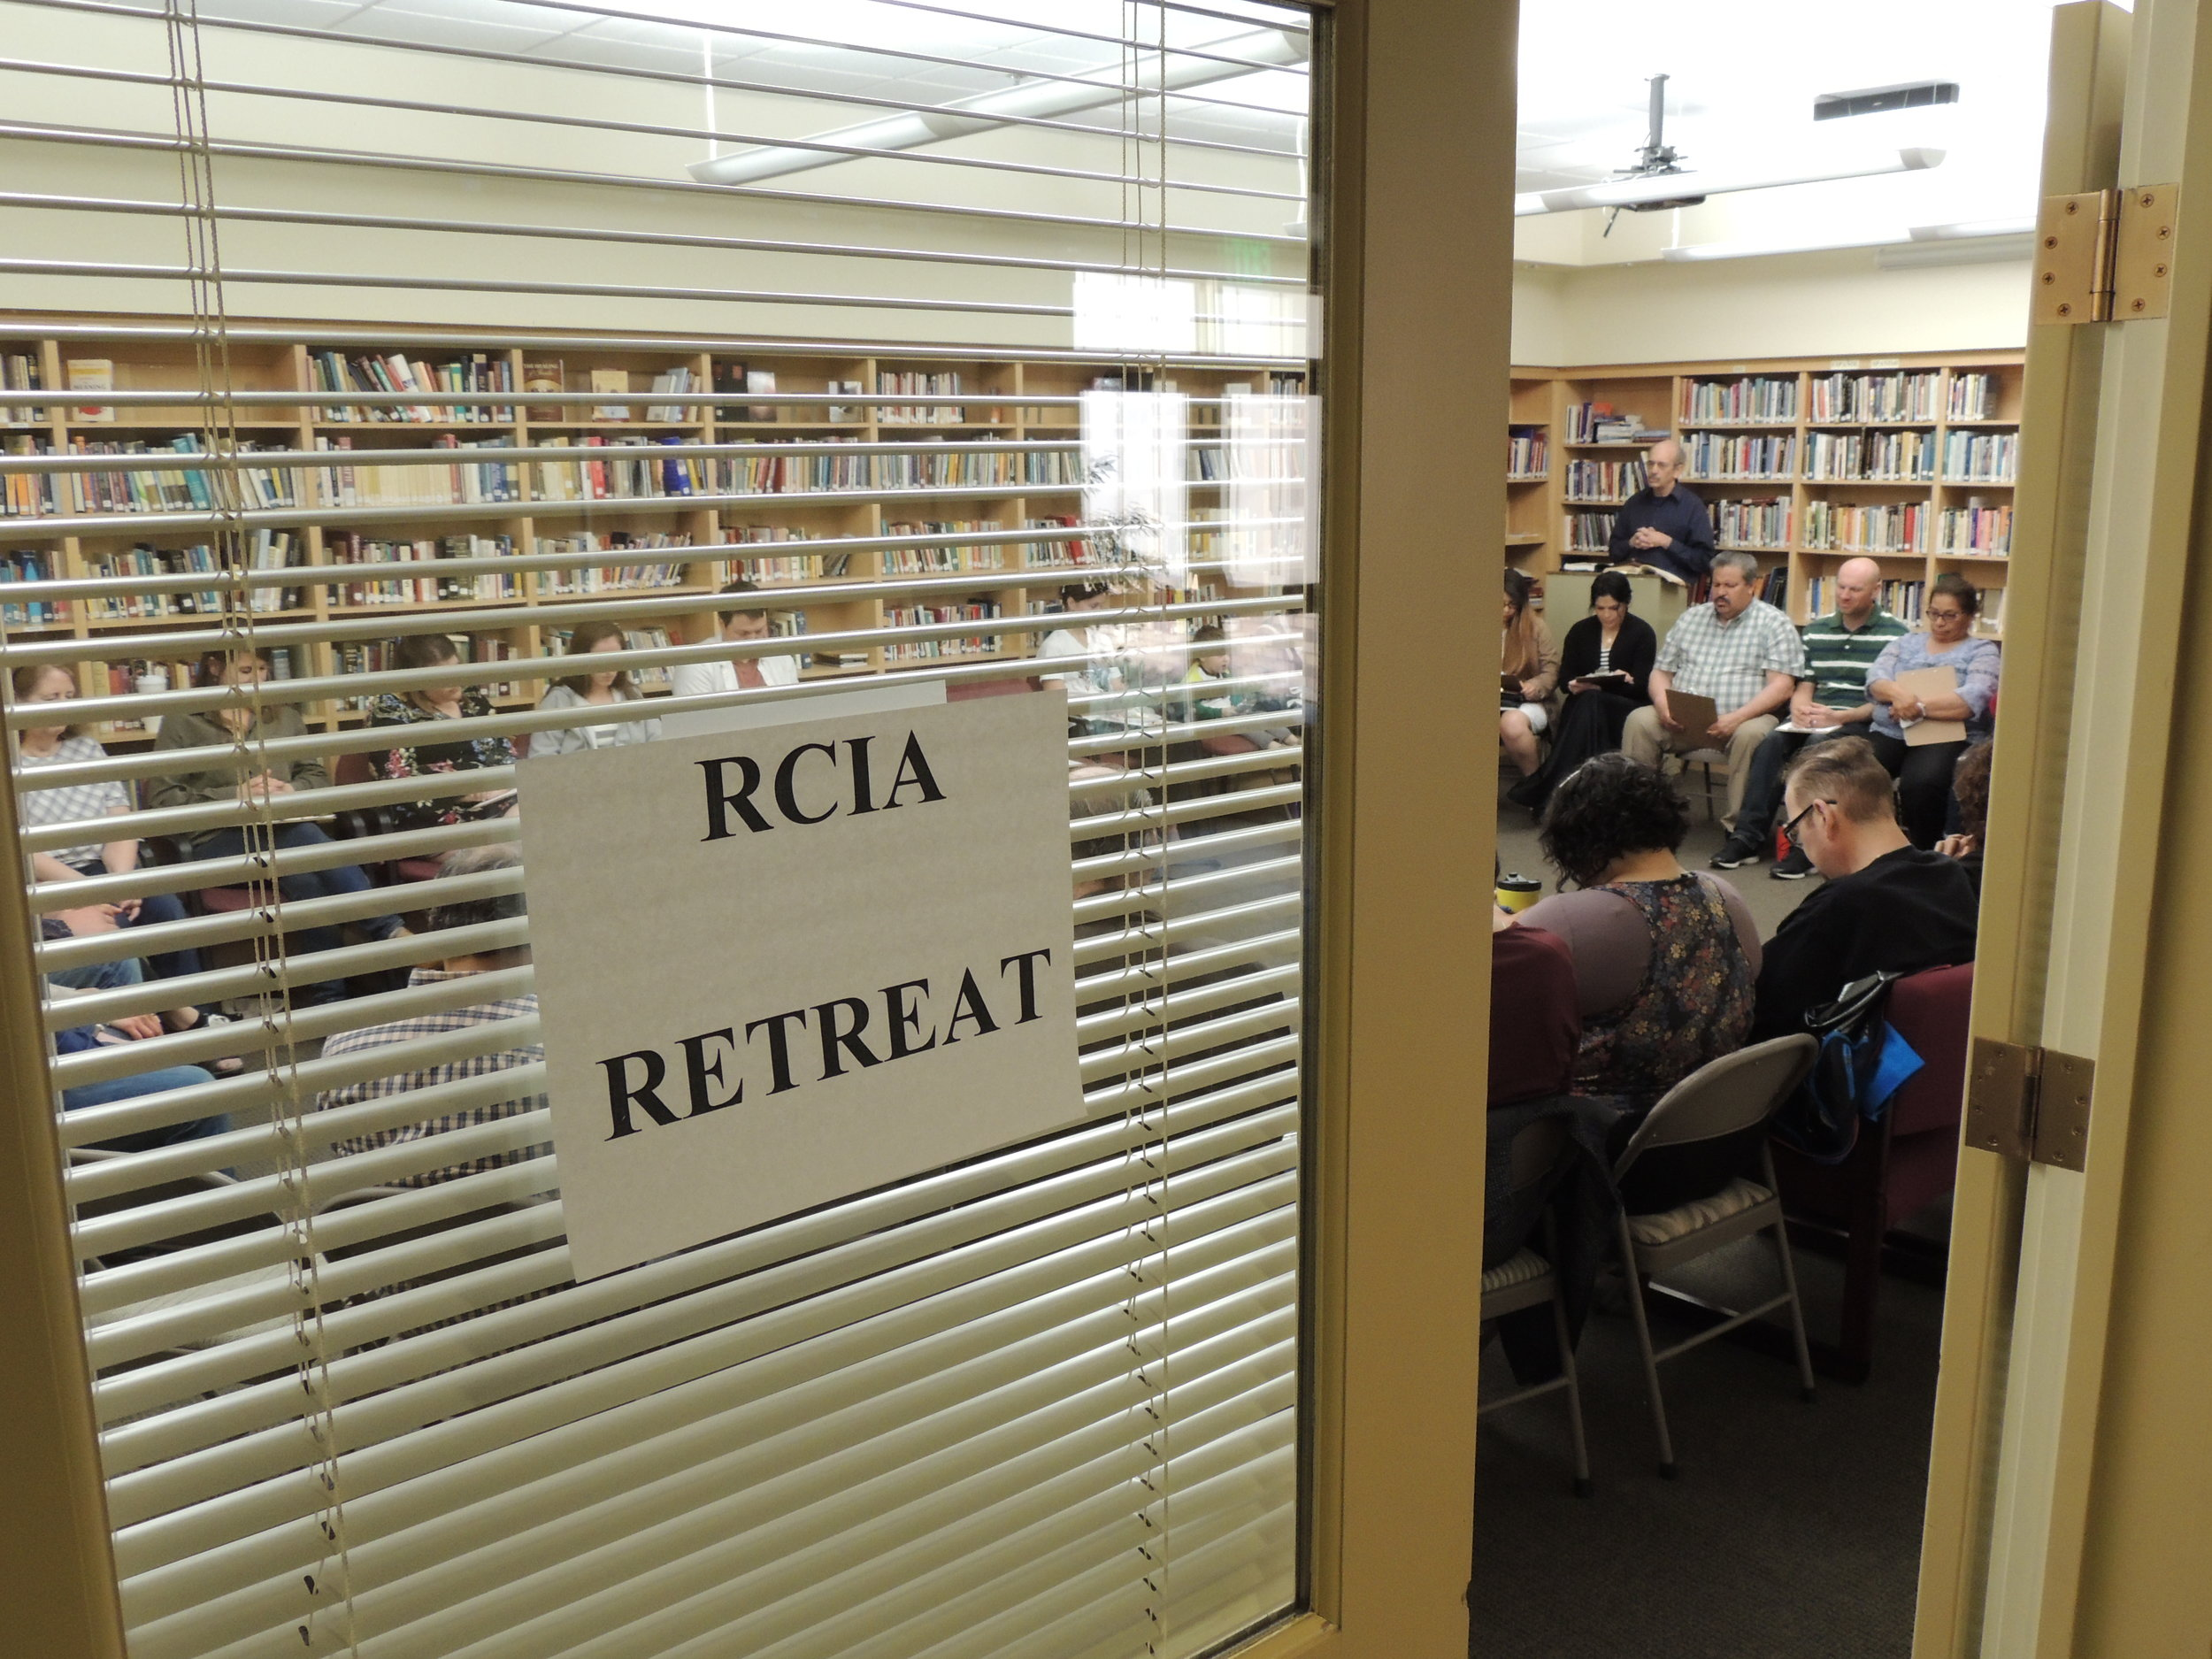 2019-0420-013-Ret-Library-RetreatSign.JPG